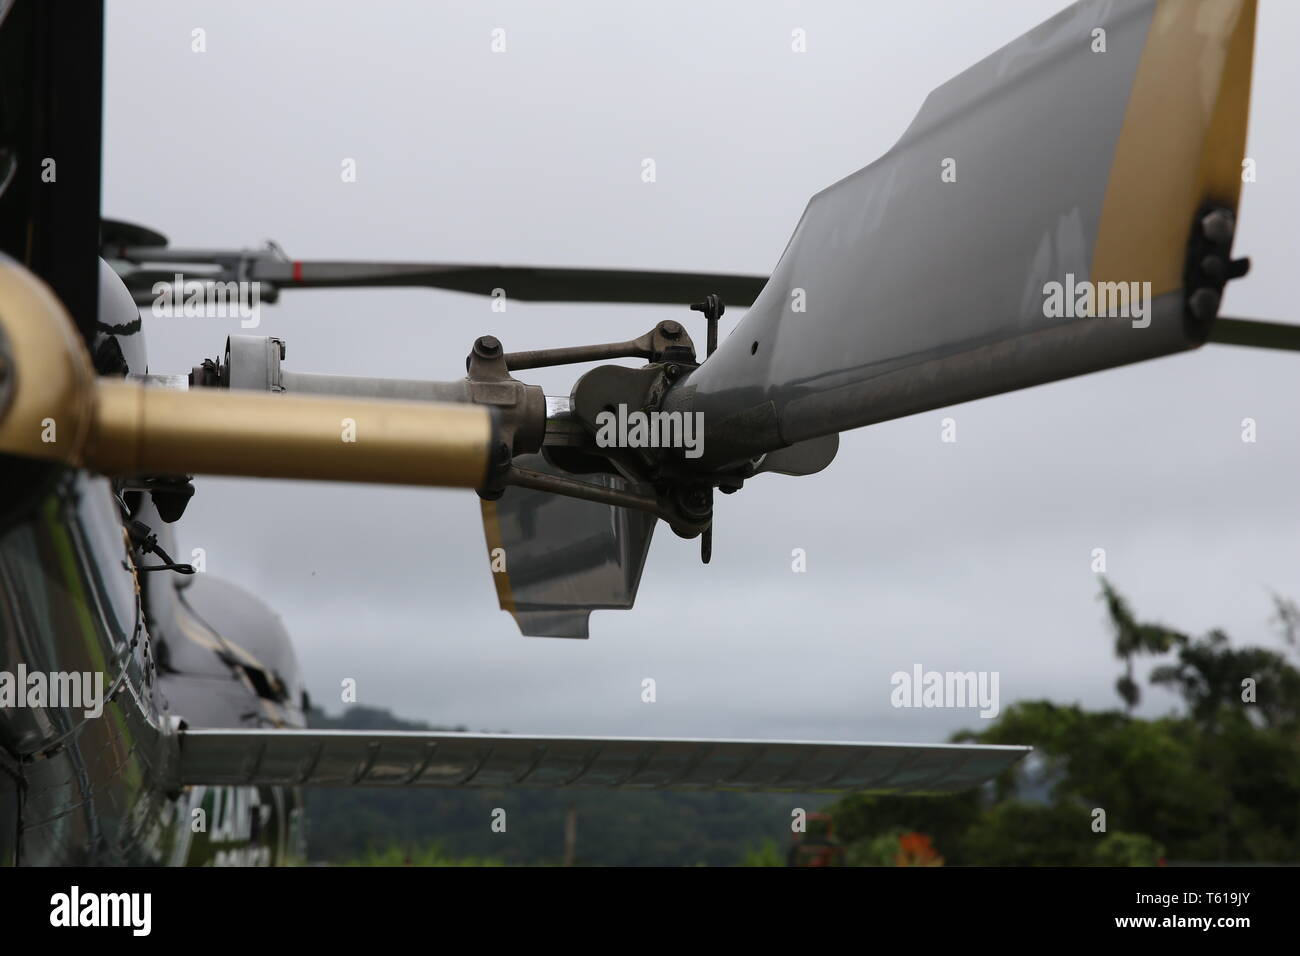 Close up view of a eurocopter tail rotor - Stock Image